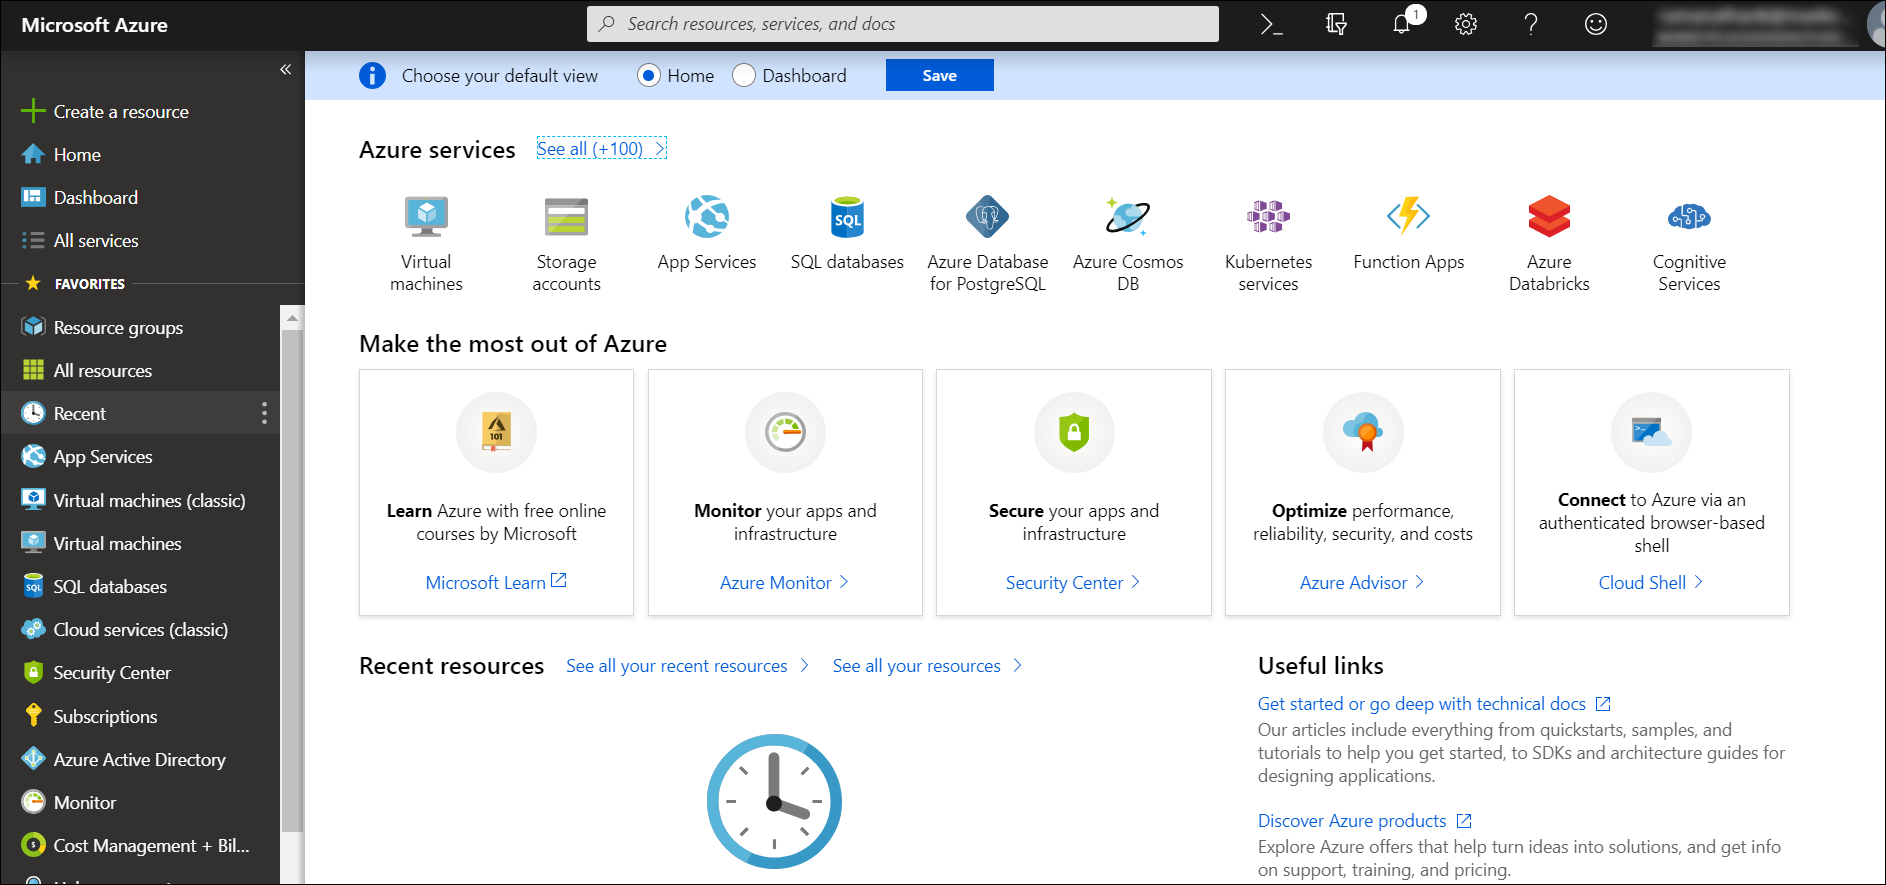 SAML-based SSO for Azure AD Users